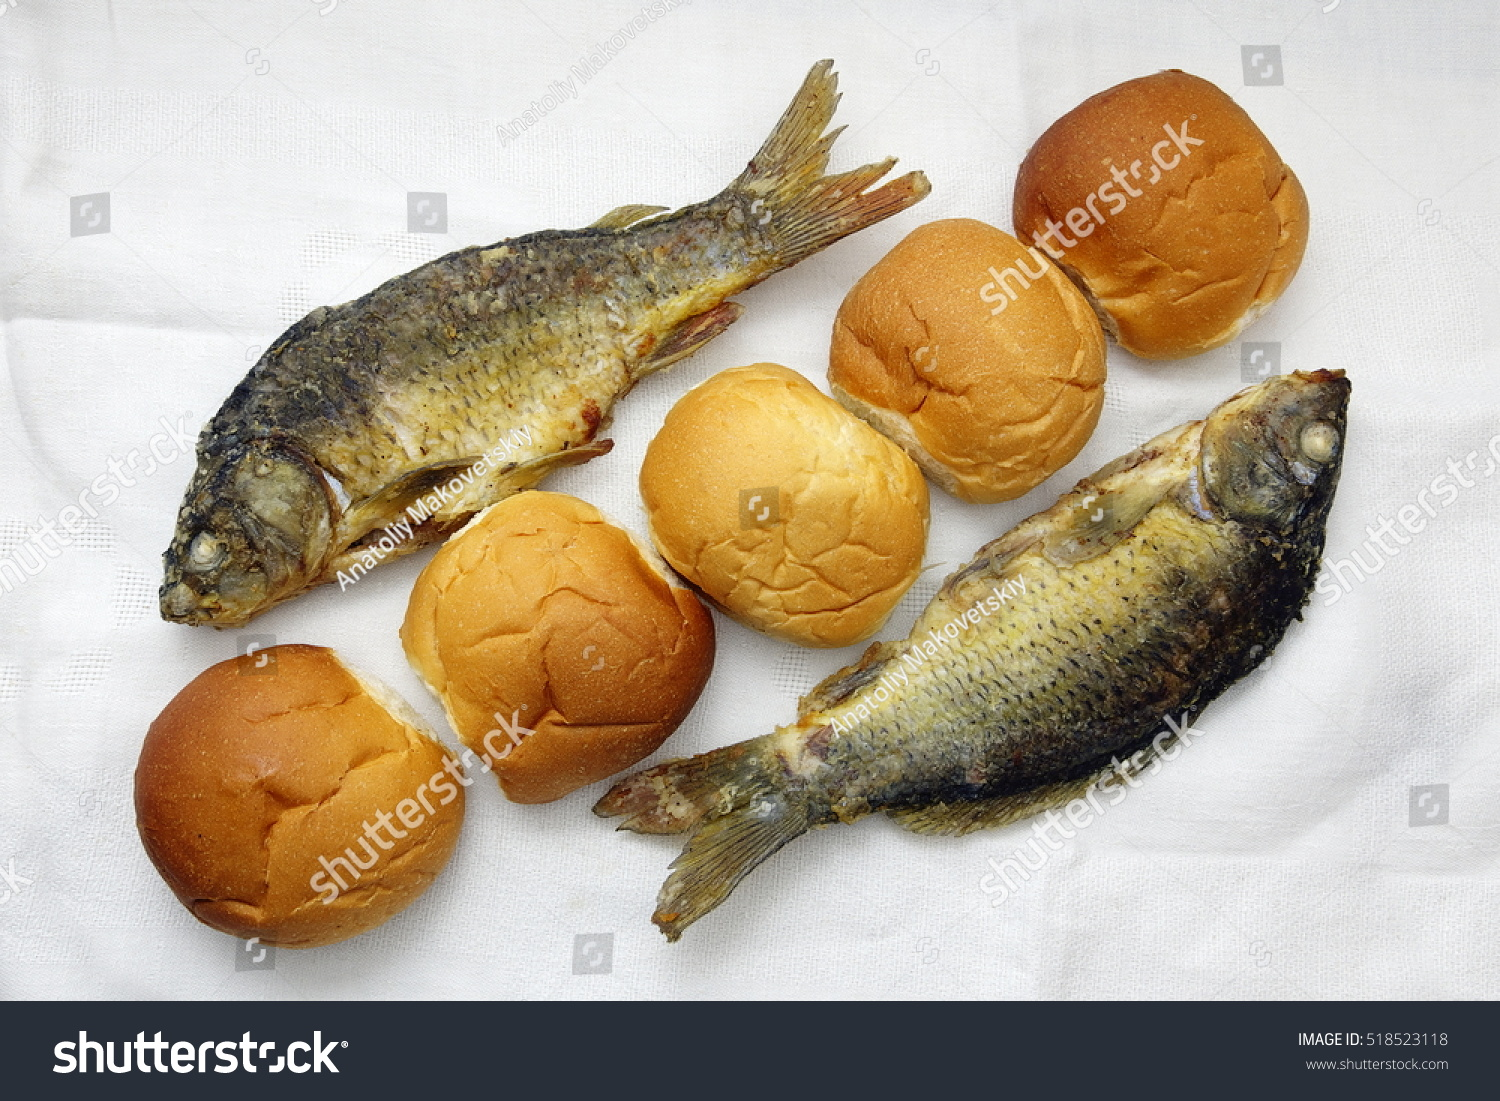 Five loaves two fishes stock photo 518523118 shutterstock for Loaves fishes